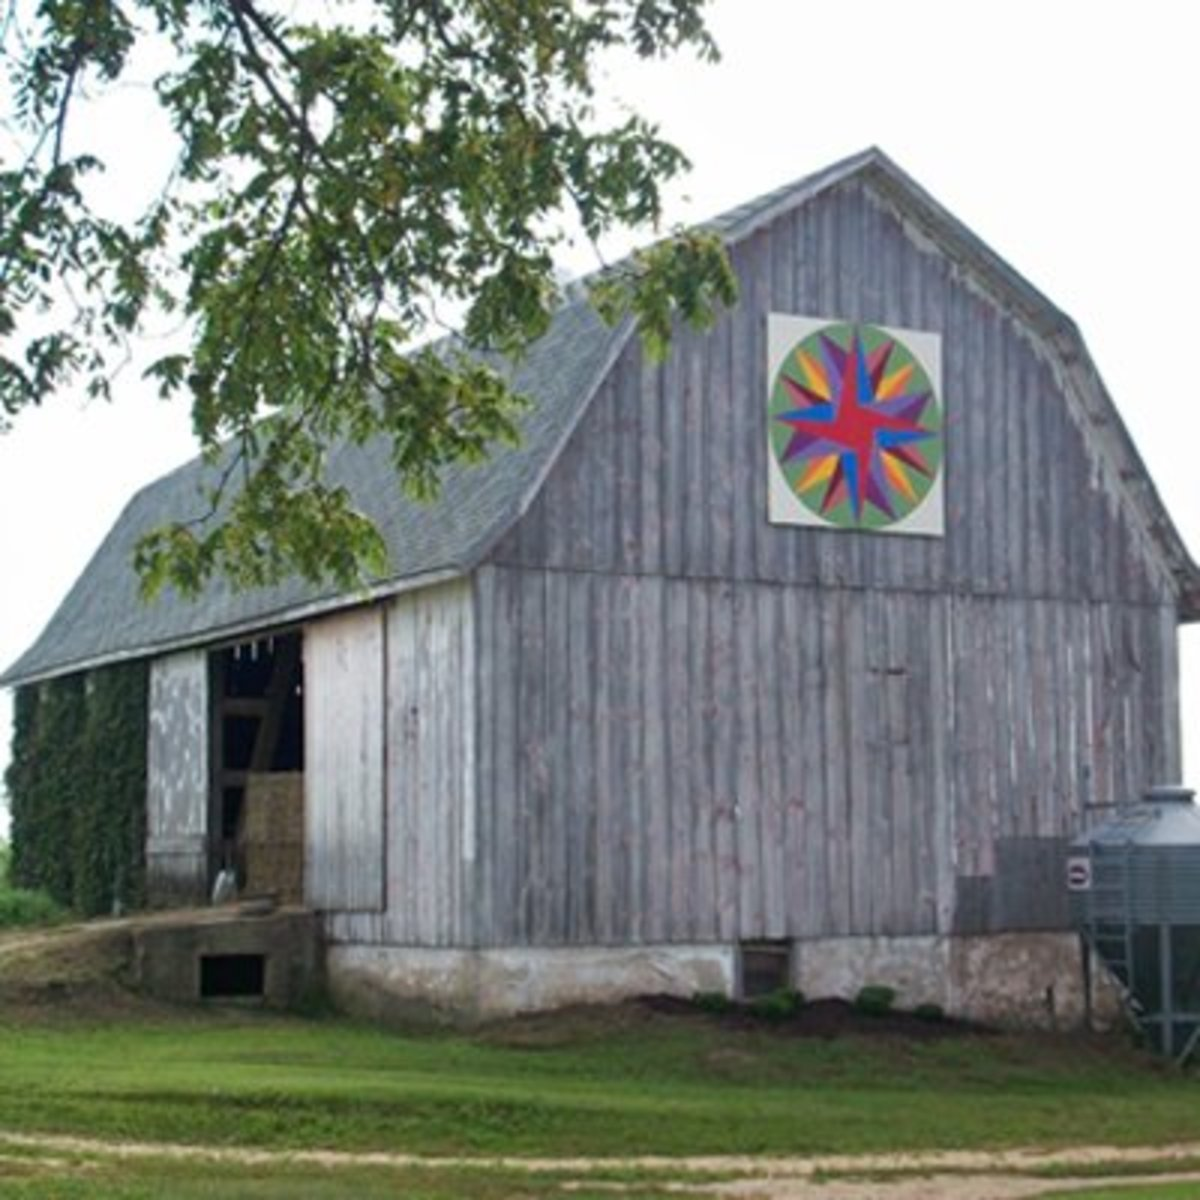 Located on the farm of John and Amy Bartlett